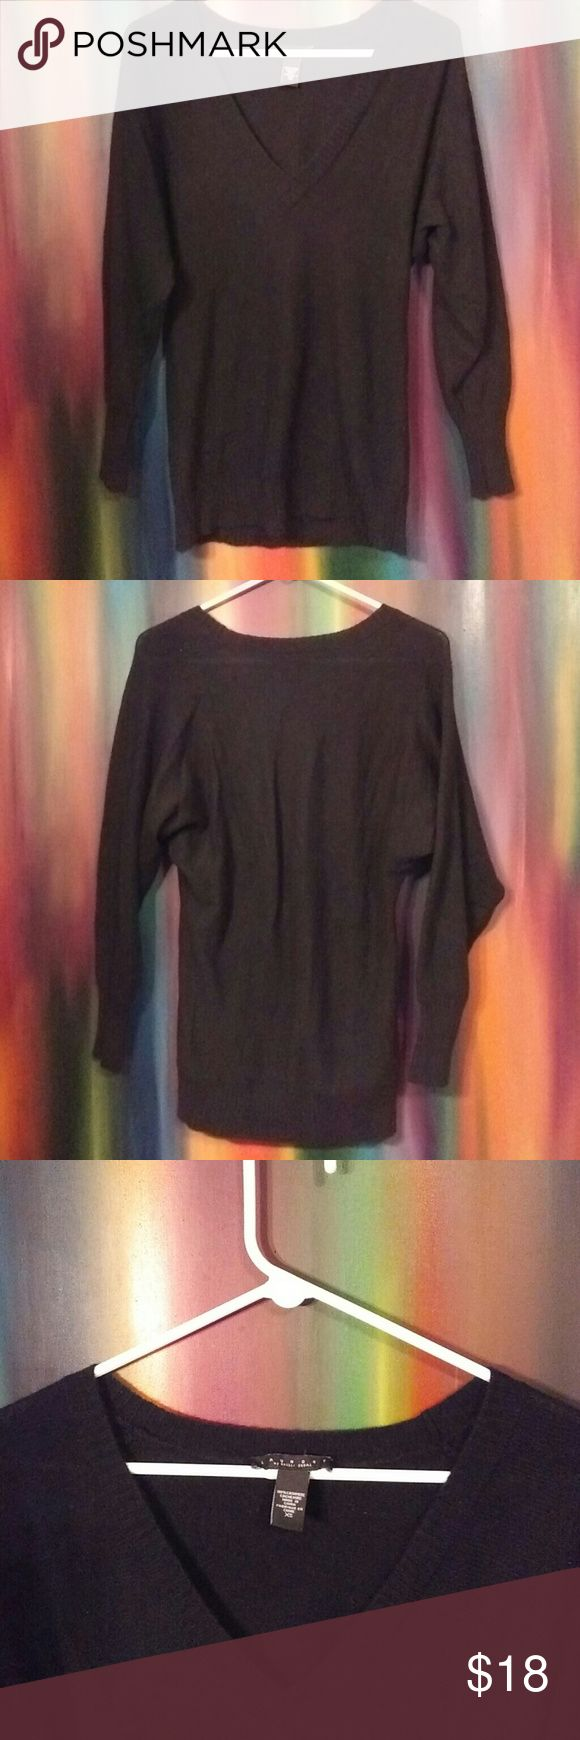 Laundry by Shelli Segal Sweater Black long sleeve v neck cashmere sweater. Size X-Small ; 100% Cashmere; Made in China; Great Condition Laundry by Shelli Segal Sweaters V-Necks